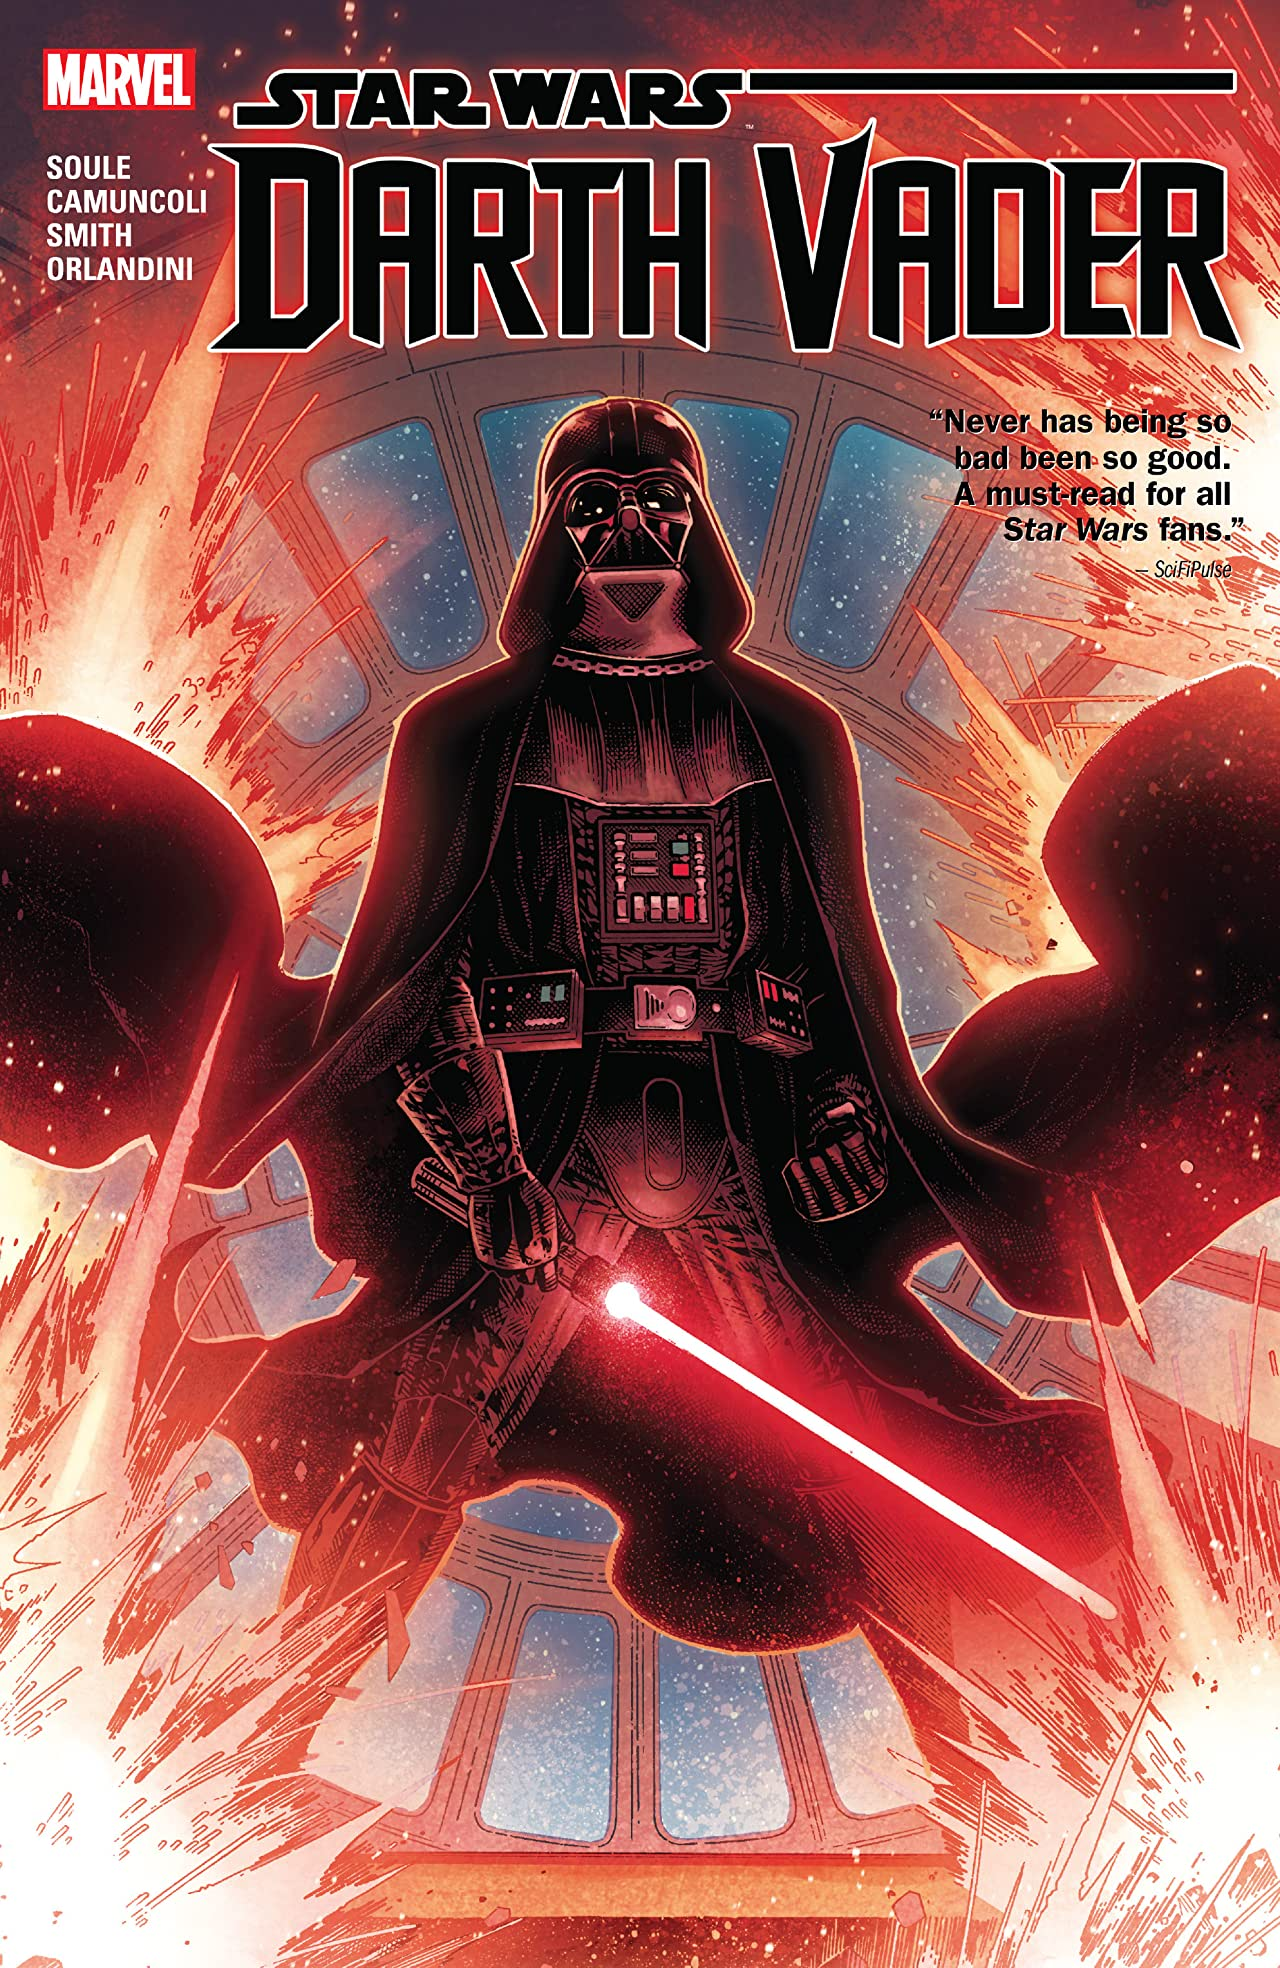 Star Wars: Darth Vader - Dark Lord Of The Sith Vol. 1 Collection